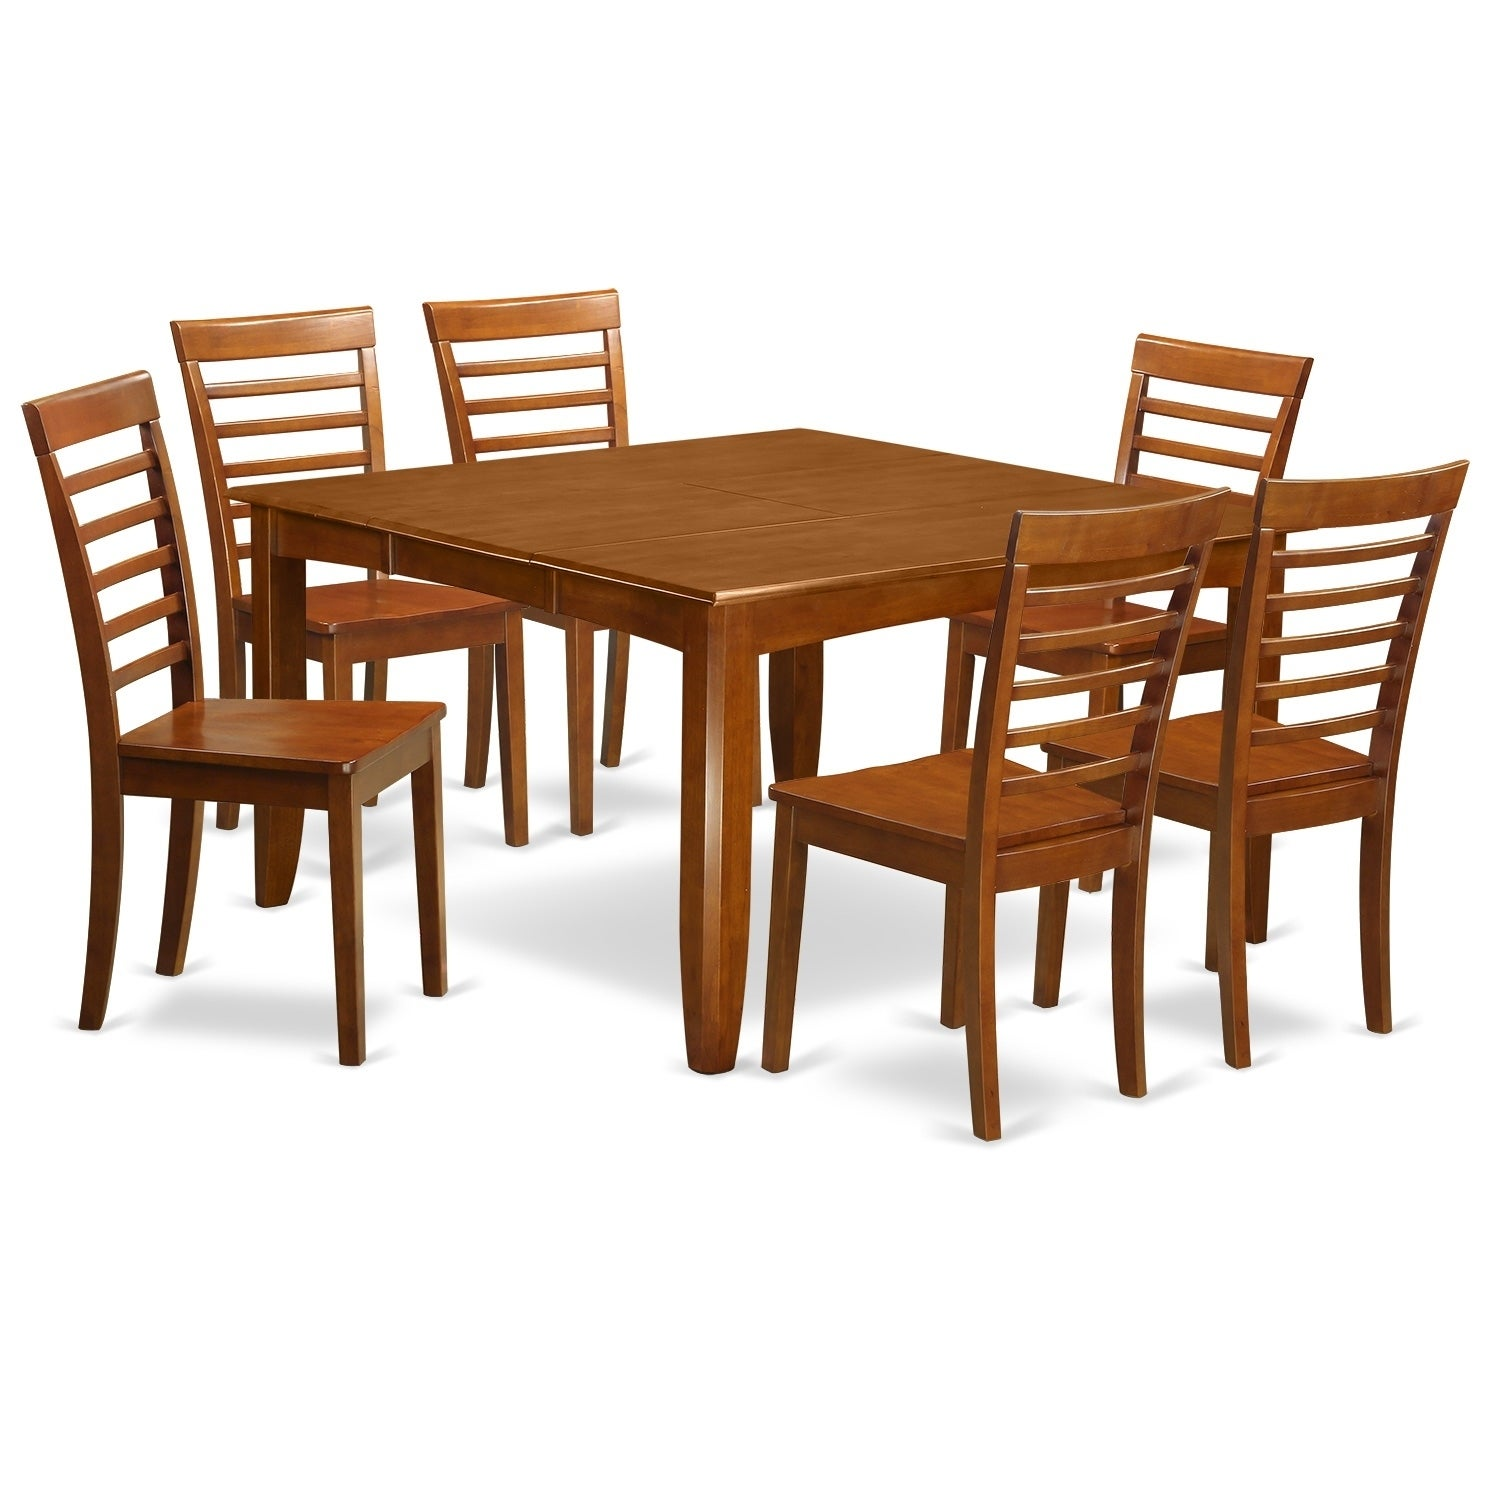 PFML7 SBR 7 PC Dining Room Set Table With Leaf And 6 Dinette Chairs